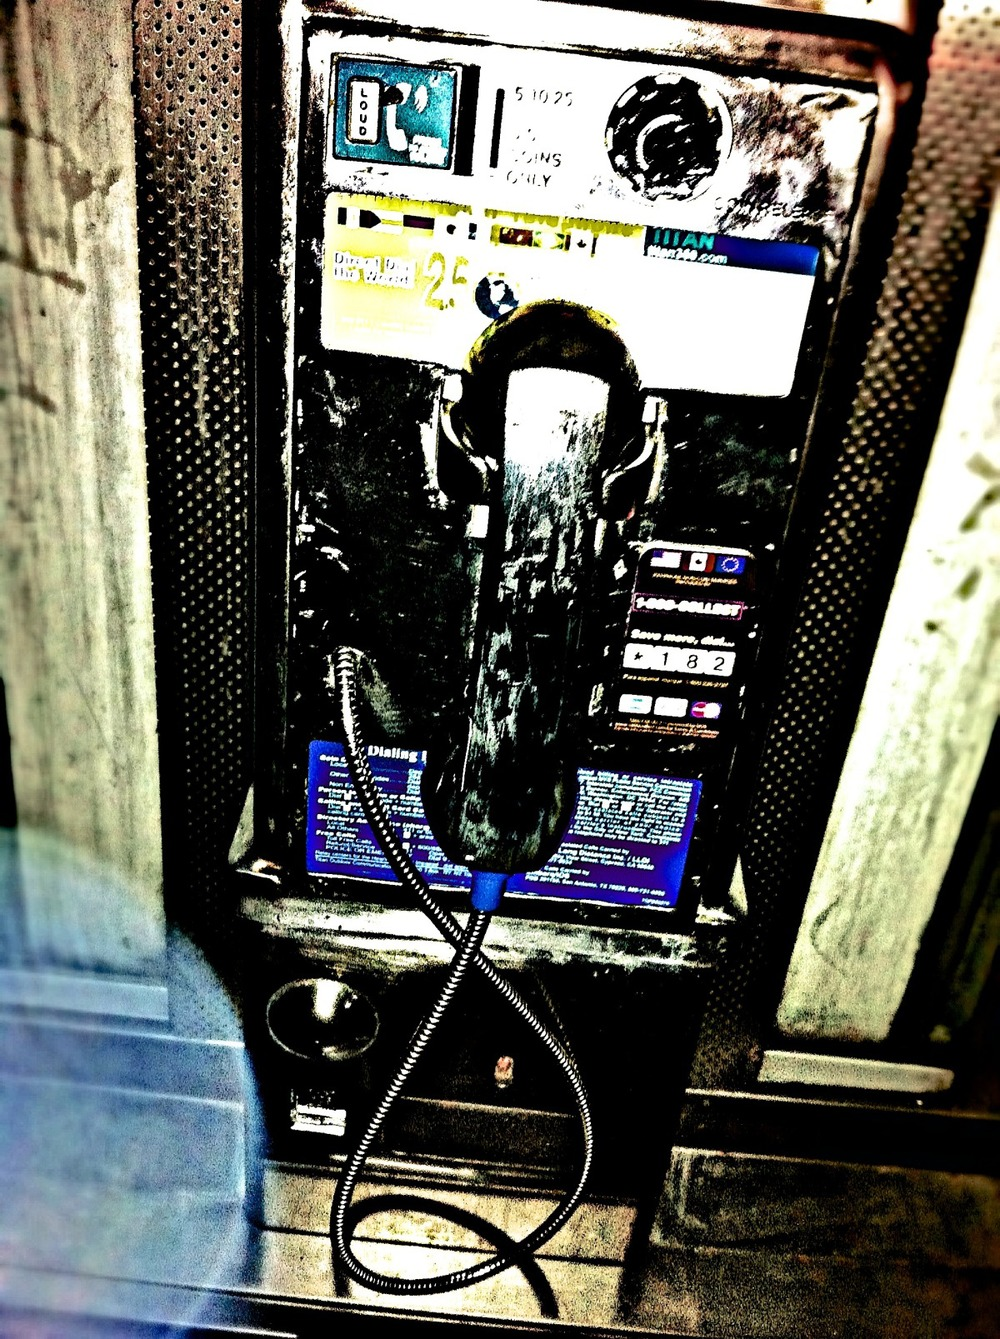 payphone export july 2012 4.jpg